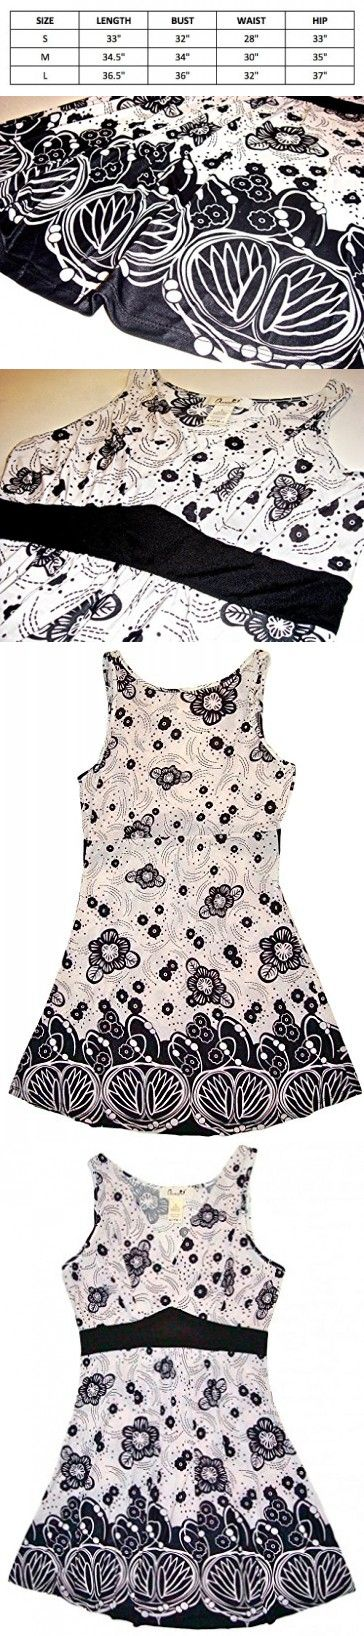 Chanceful Women's Sleeveless Front Overlap Ruched Floral Printed Shift Dress Large Black/White